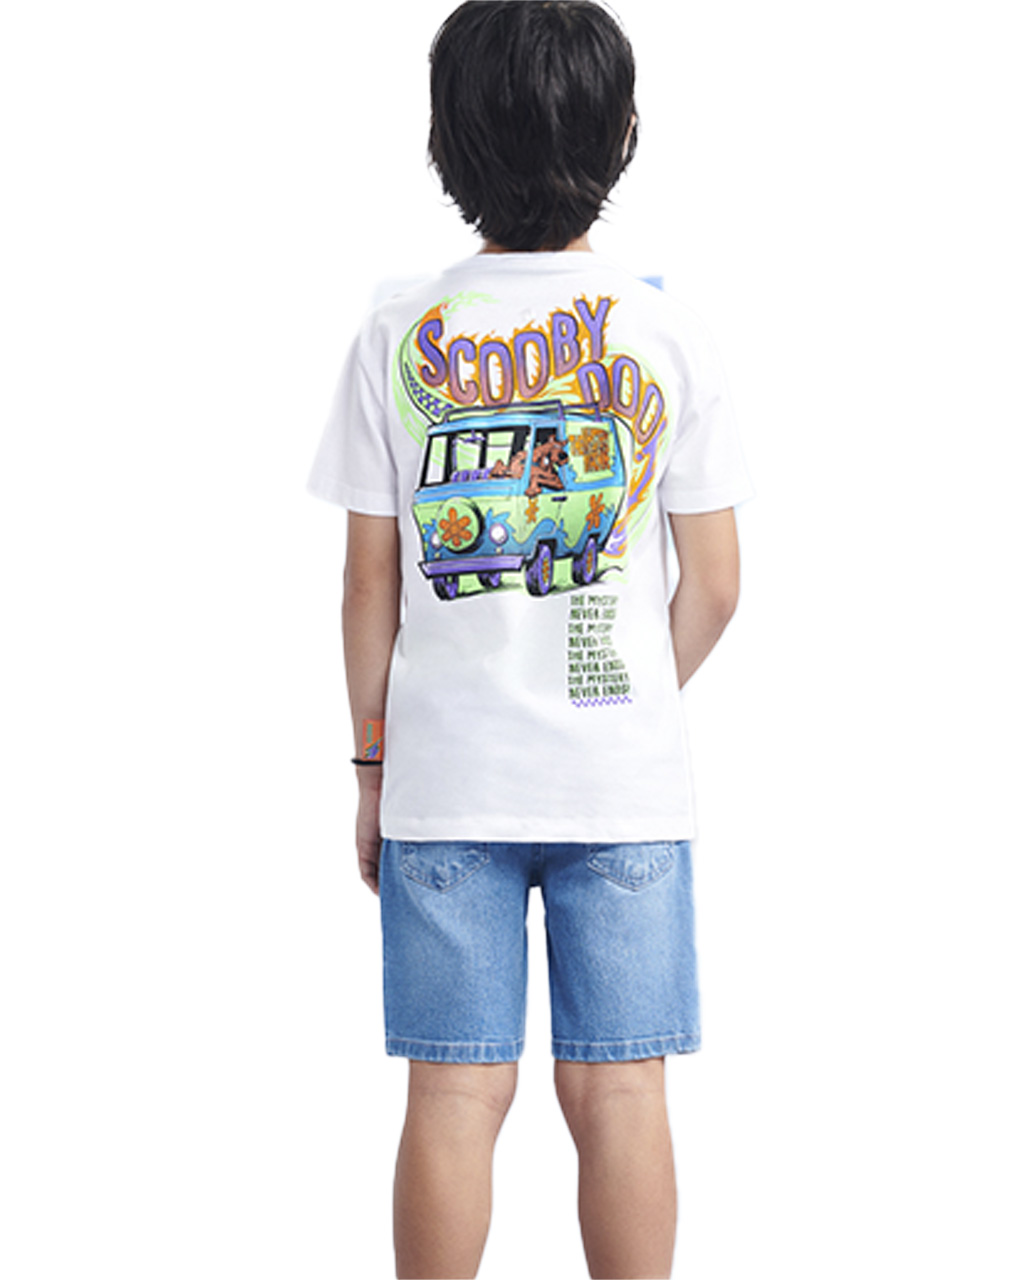 T-Shirt Infantil Scooby-Doo Off White Youccie